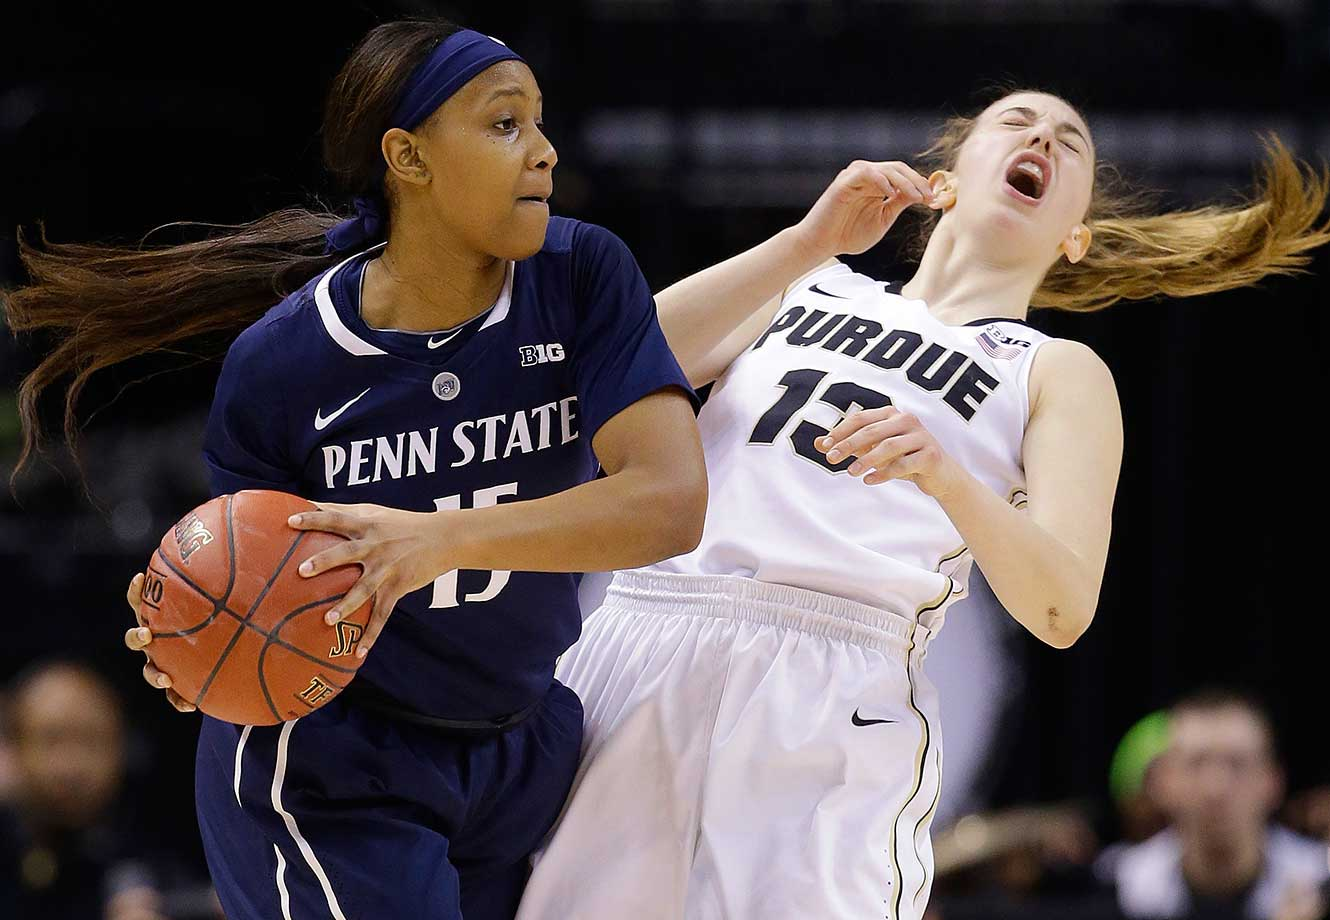 Purdue's Bridget Perry appears to have caught an elbow while defending Penn State's Kaliyah Mitchell.